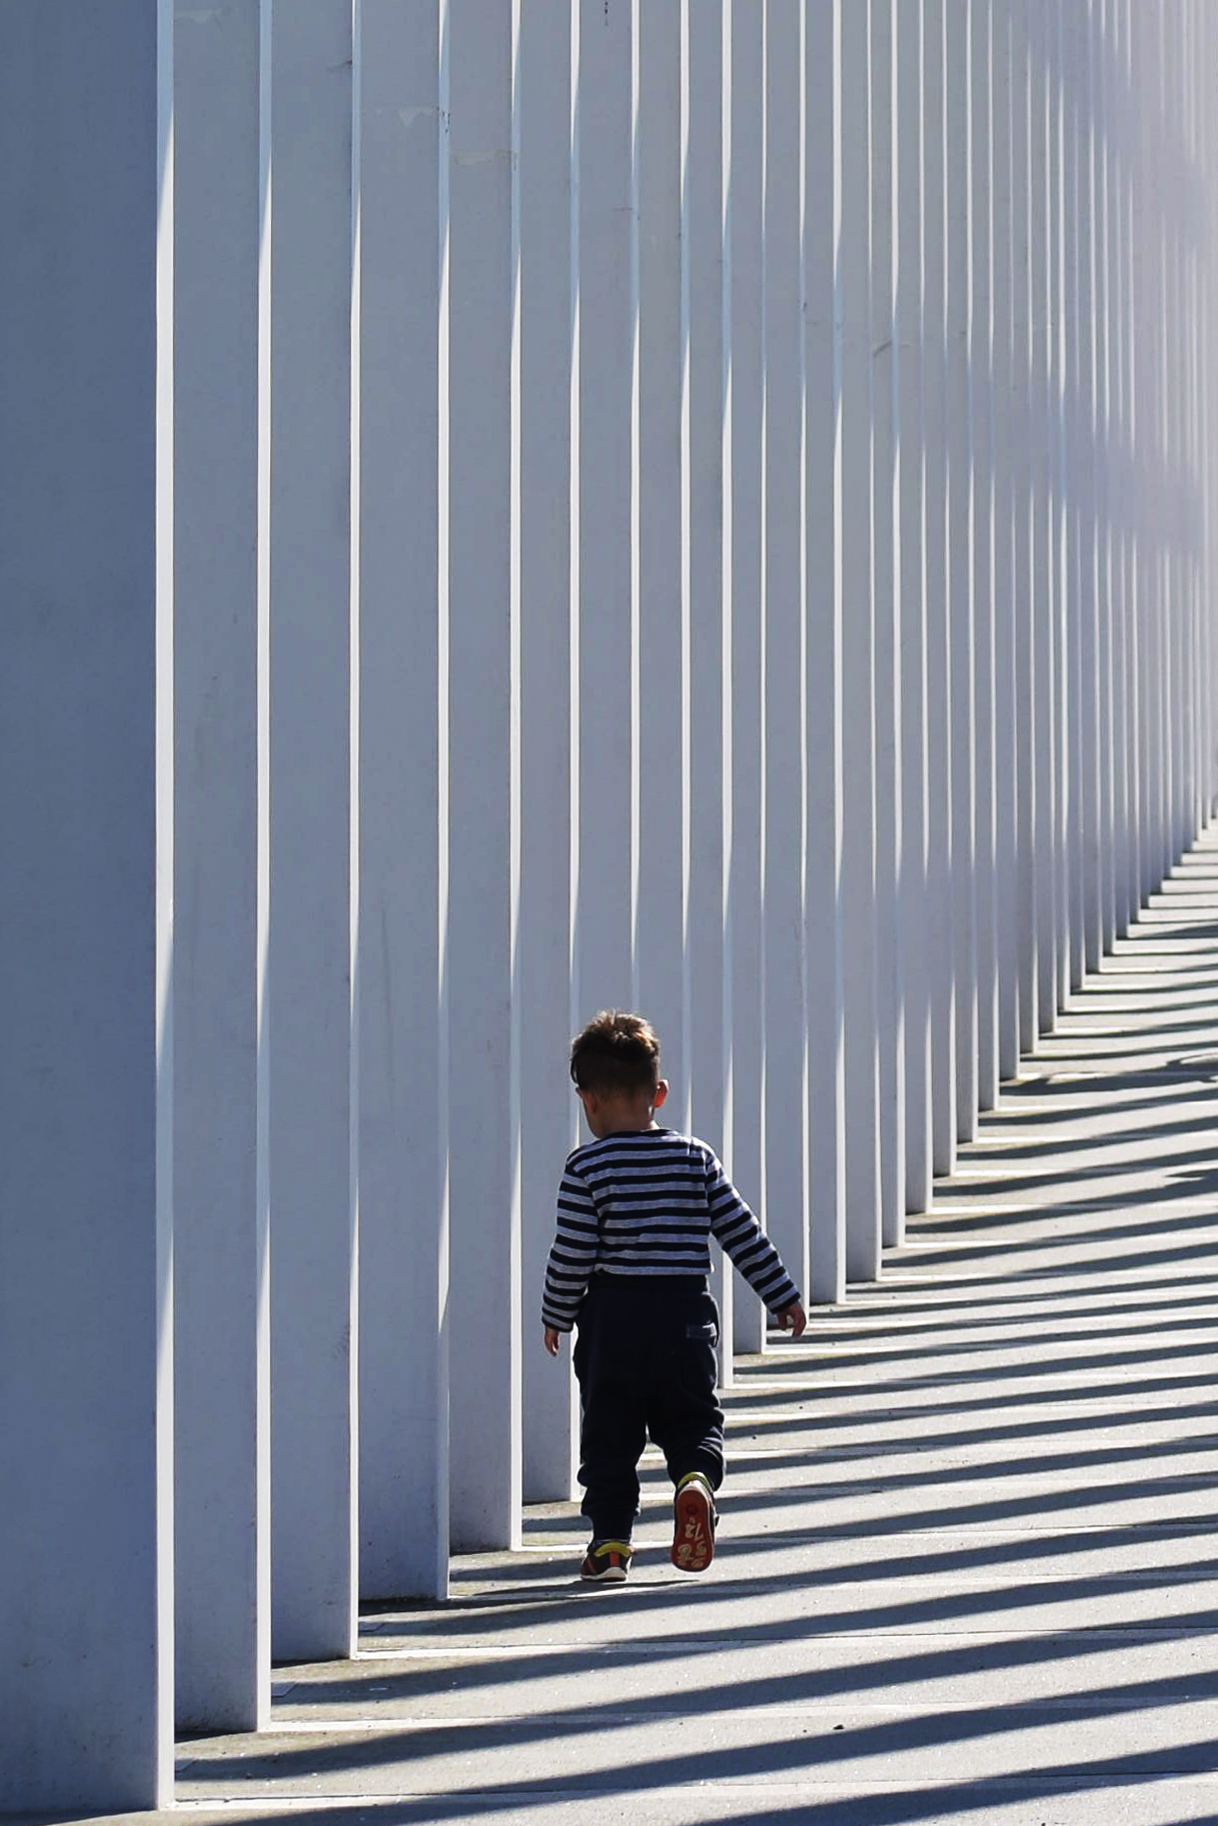 Striped concept, little boy with a striped pulli running through the light and shadow stripes of a rectangular portal made of white painted concrete, seen in Schwerin, northern Germany